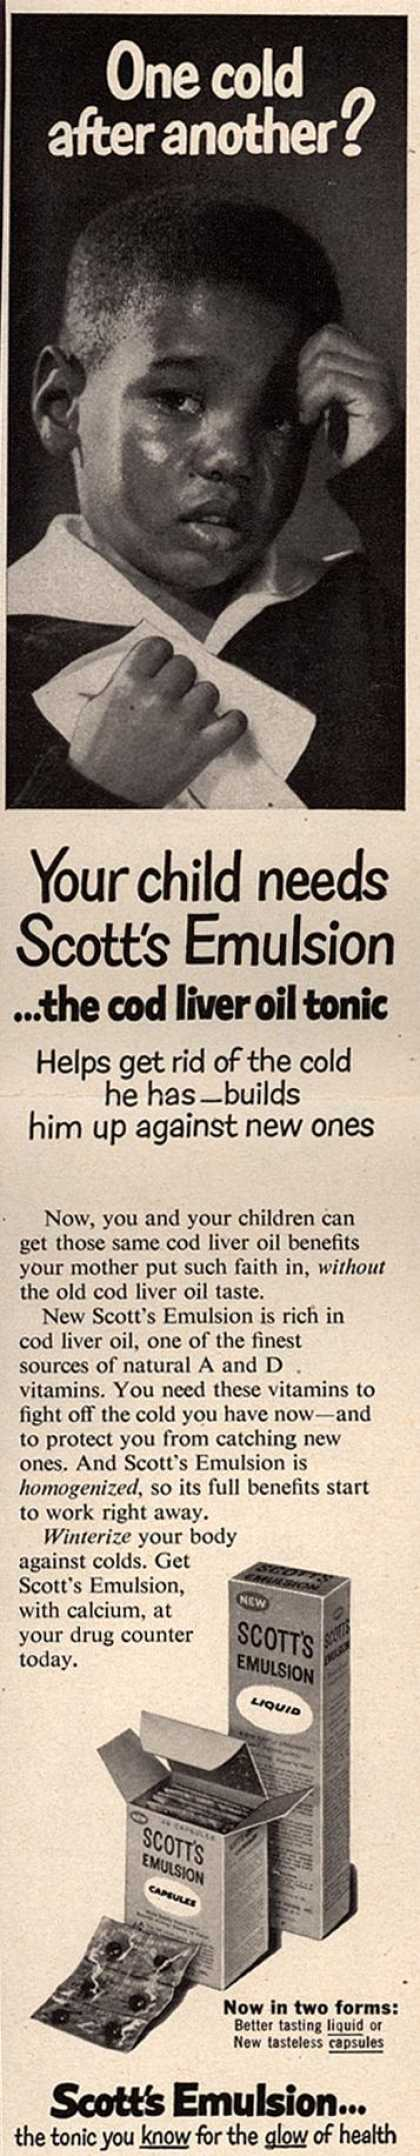 Unknown's Scott's Emulsion – One cold after another? Your child needs Scott's Emulsion (1957)